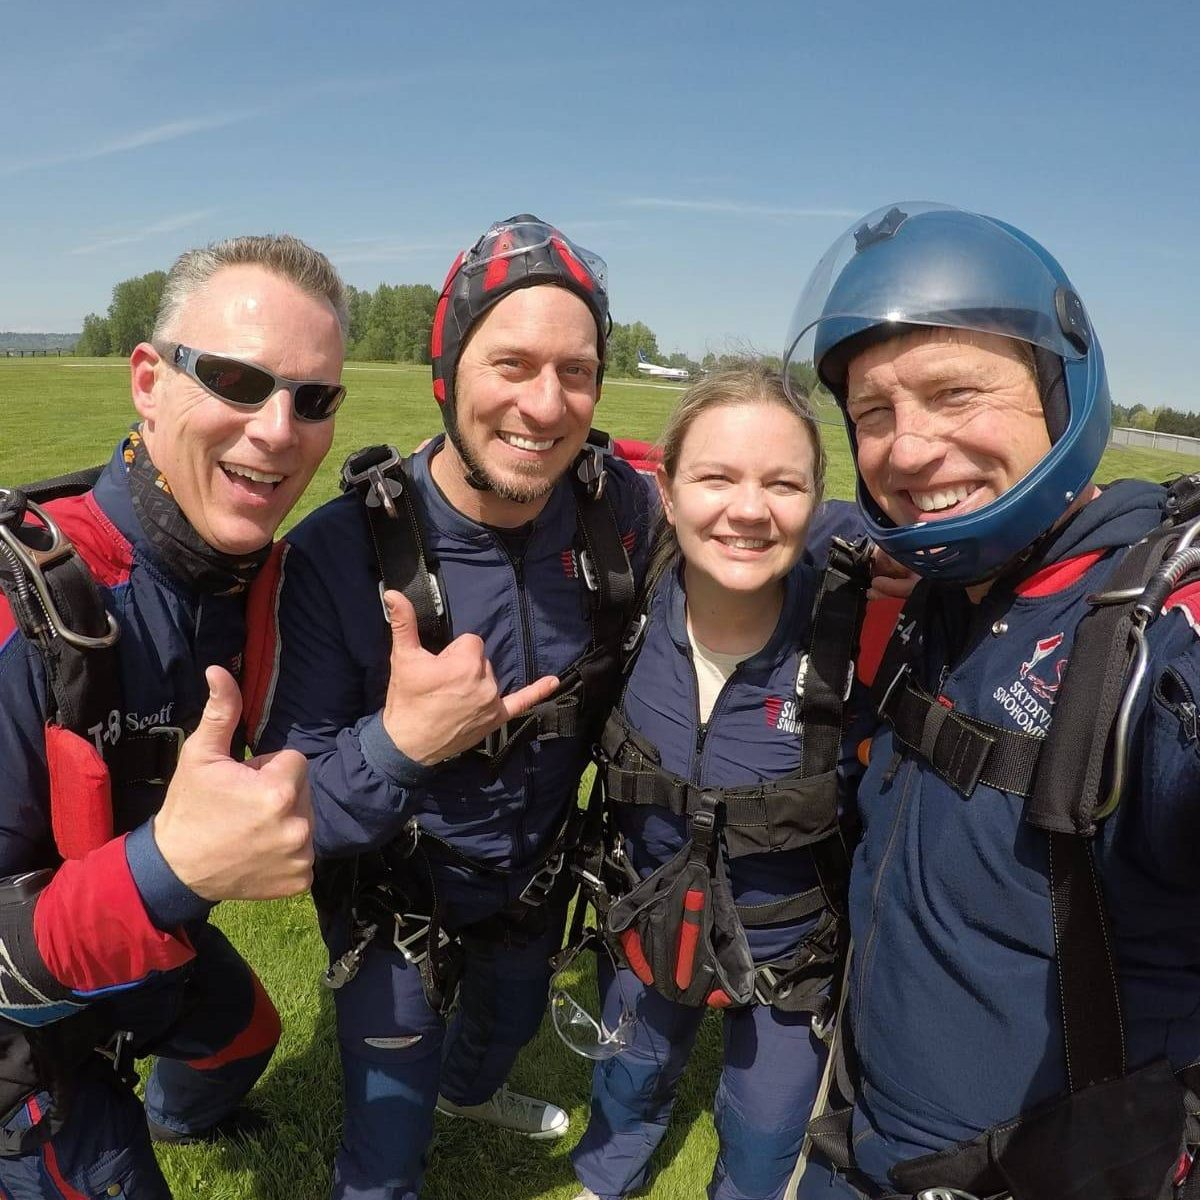 Tandem instructors smiling at Skydive Snohomish landing area.